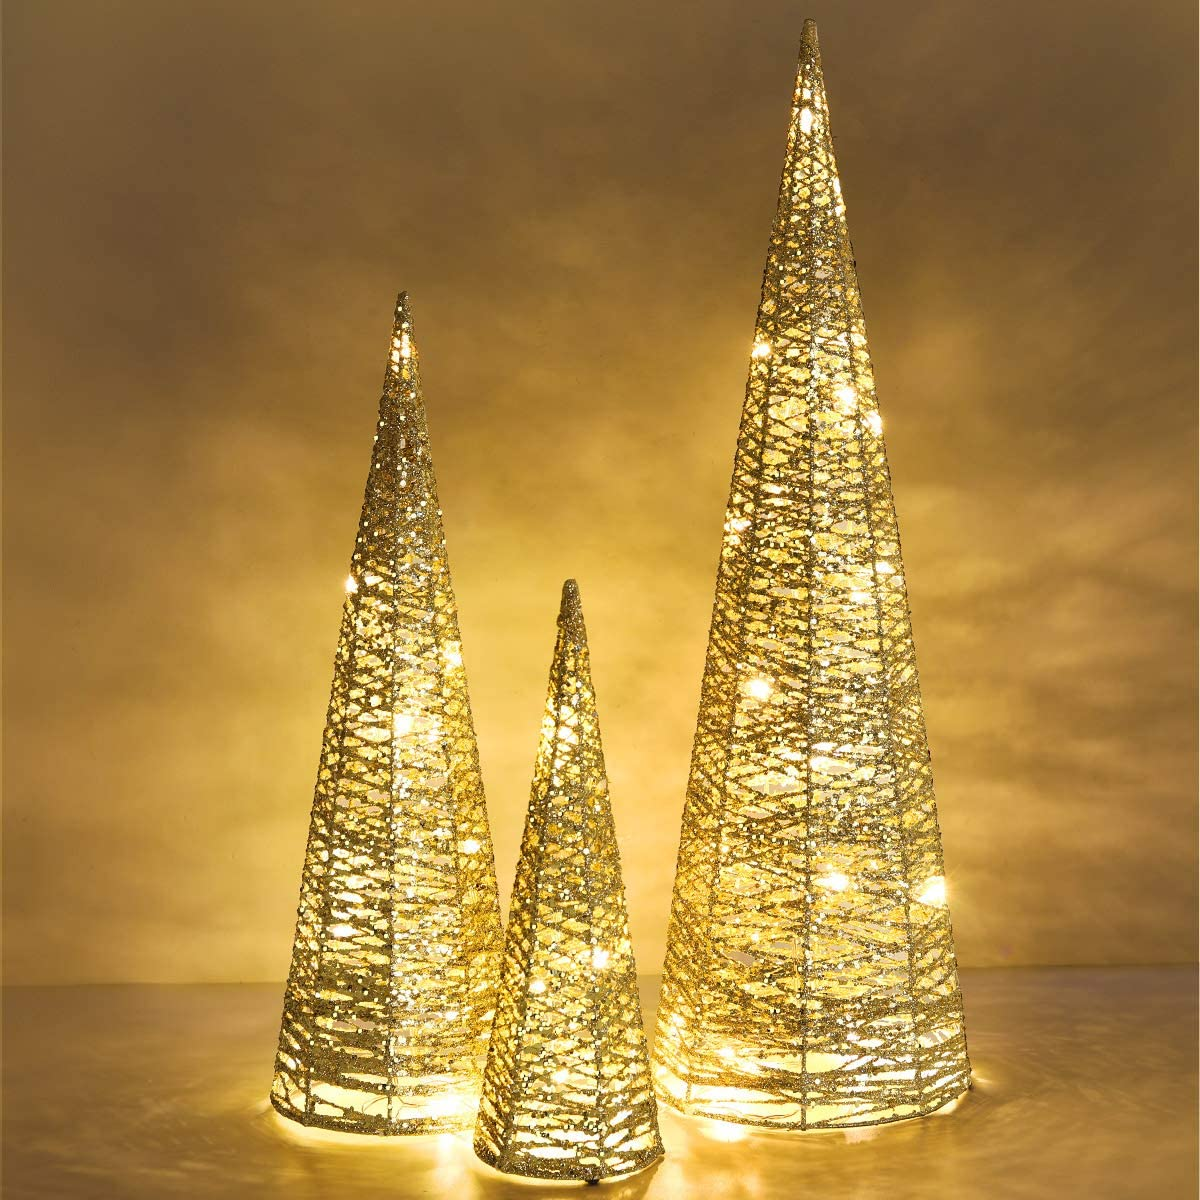 Luxspire Christmas Cone Tree Light, 3 Pieces LED Lighted Cone Tree Outdoor Christmas Decoration, Sparkle Beautiful Bright Tree Use Battery Powered Home Décor Christmas for Party Decoration, Gold